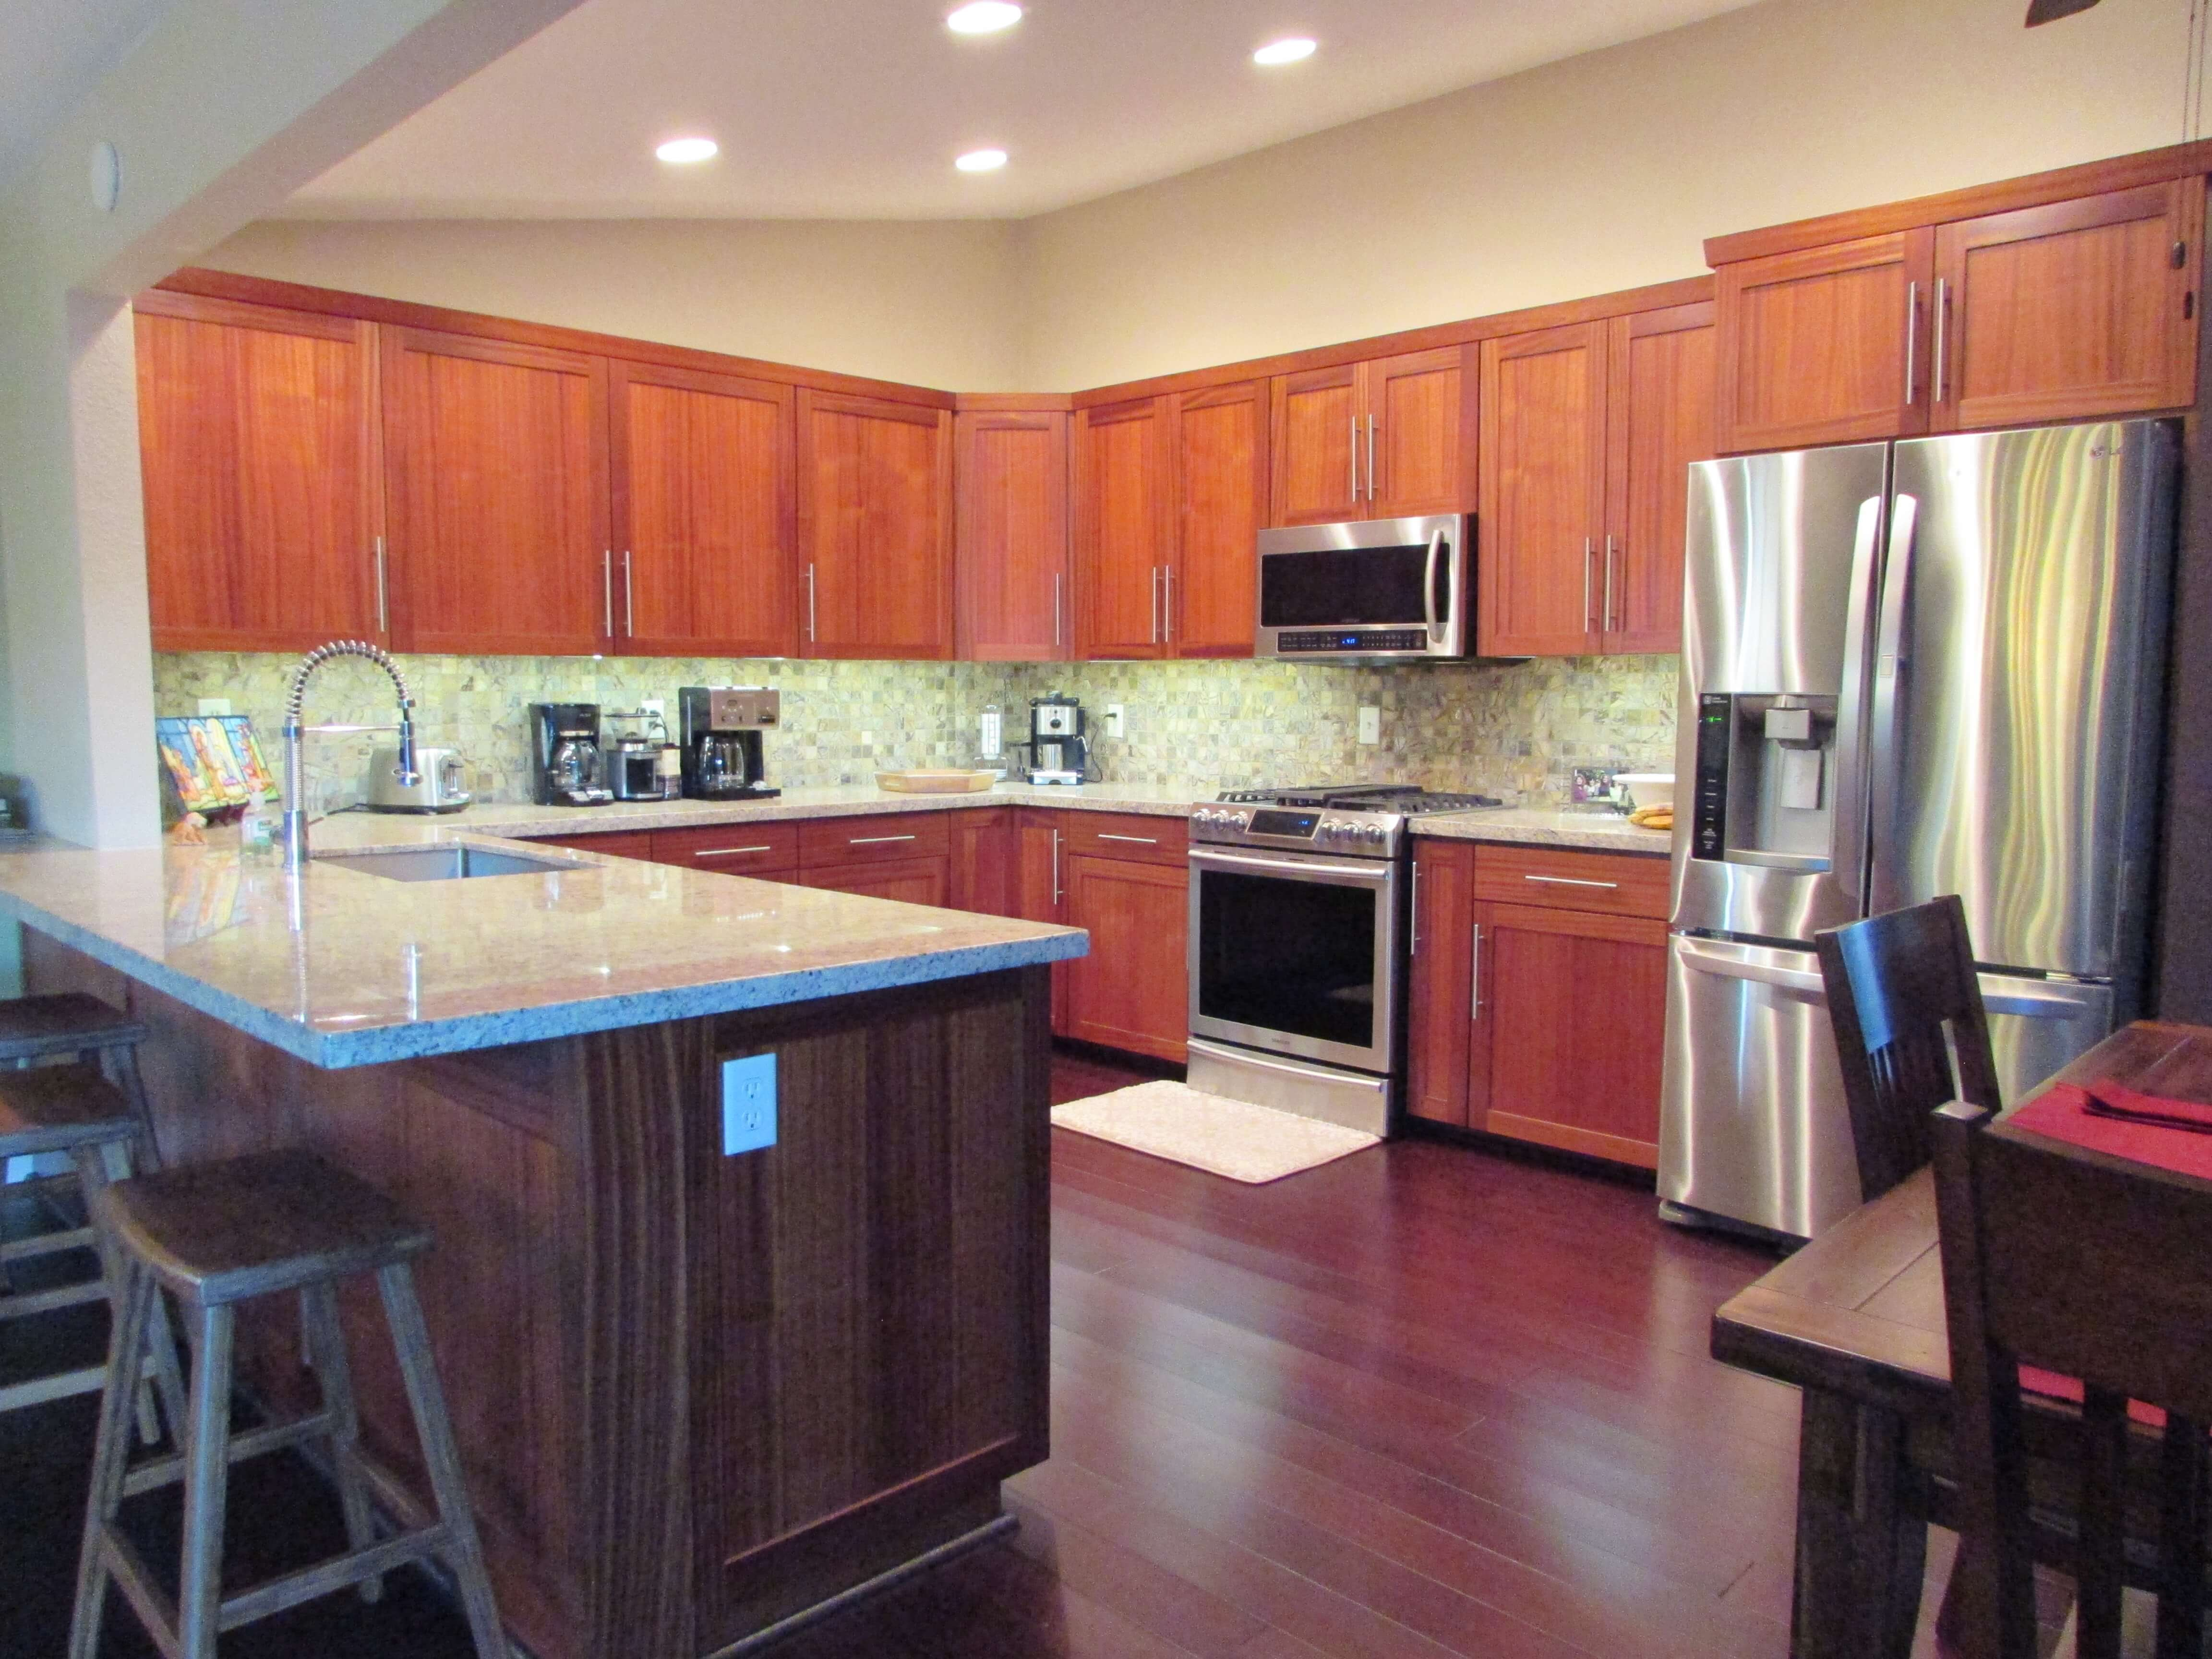 Mahogany shaker cabinets with peninsula bar Southern California